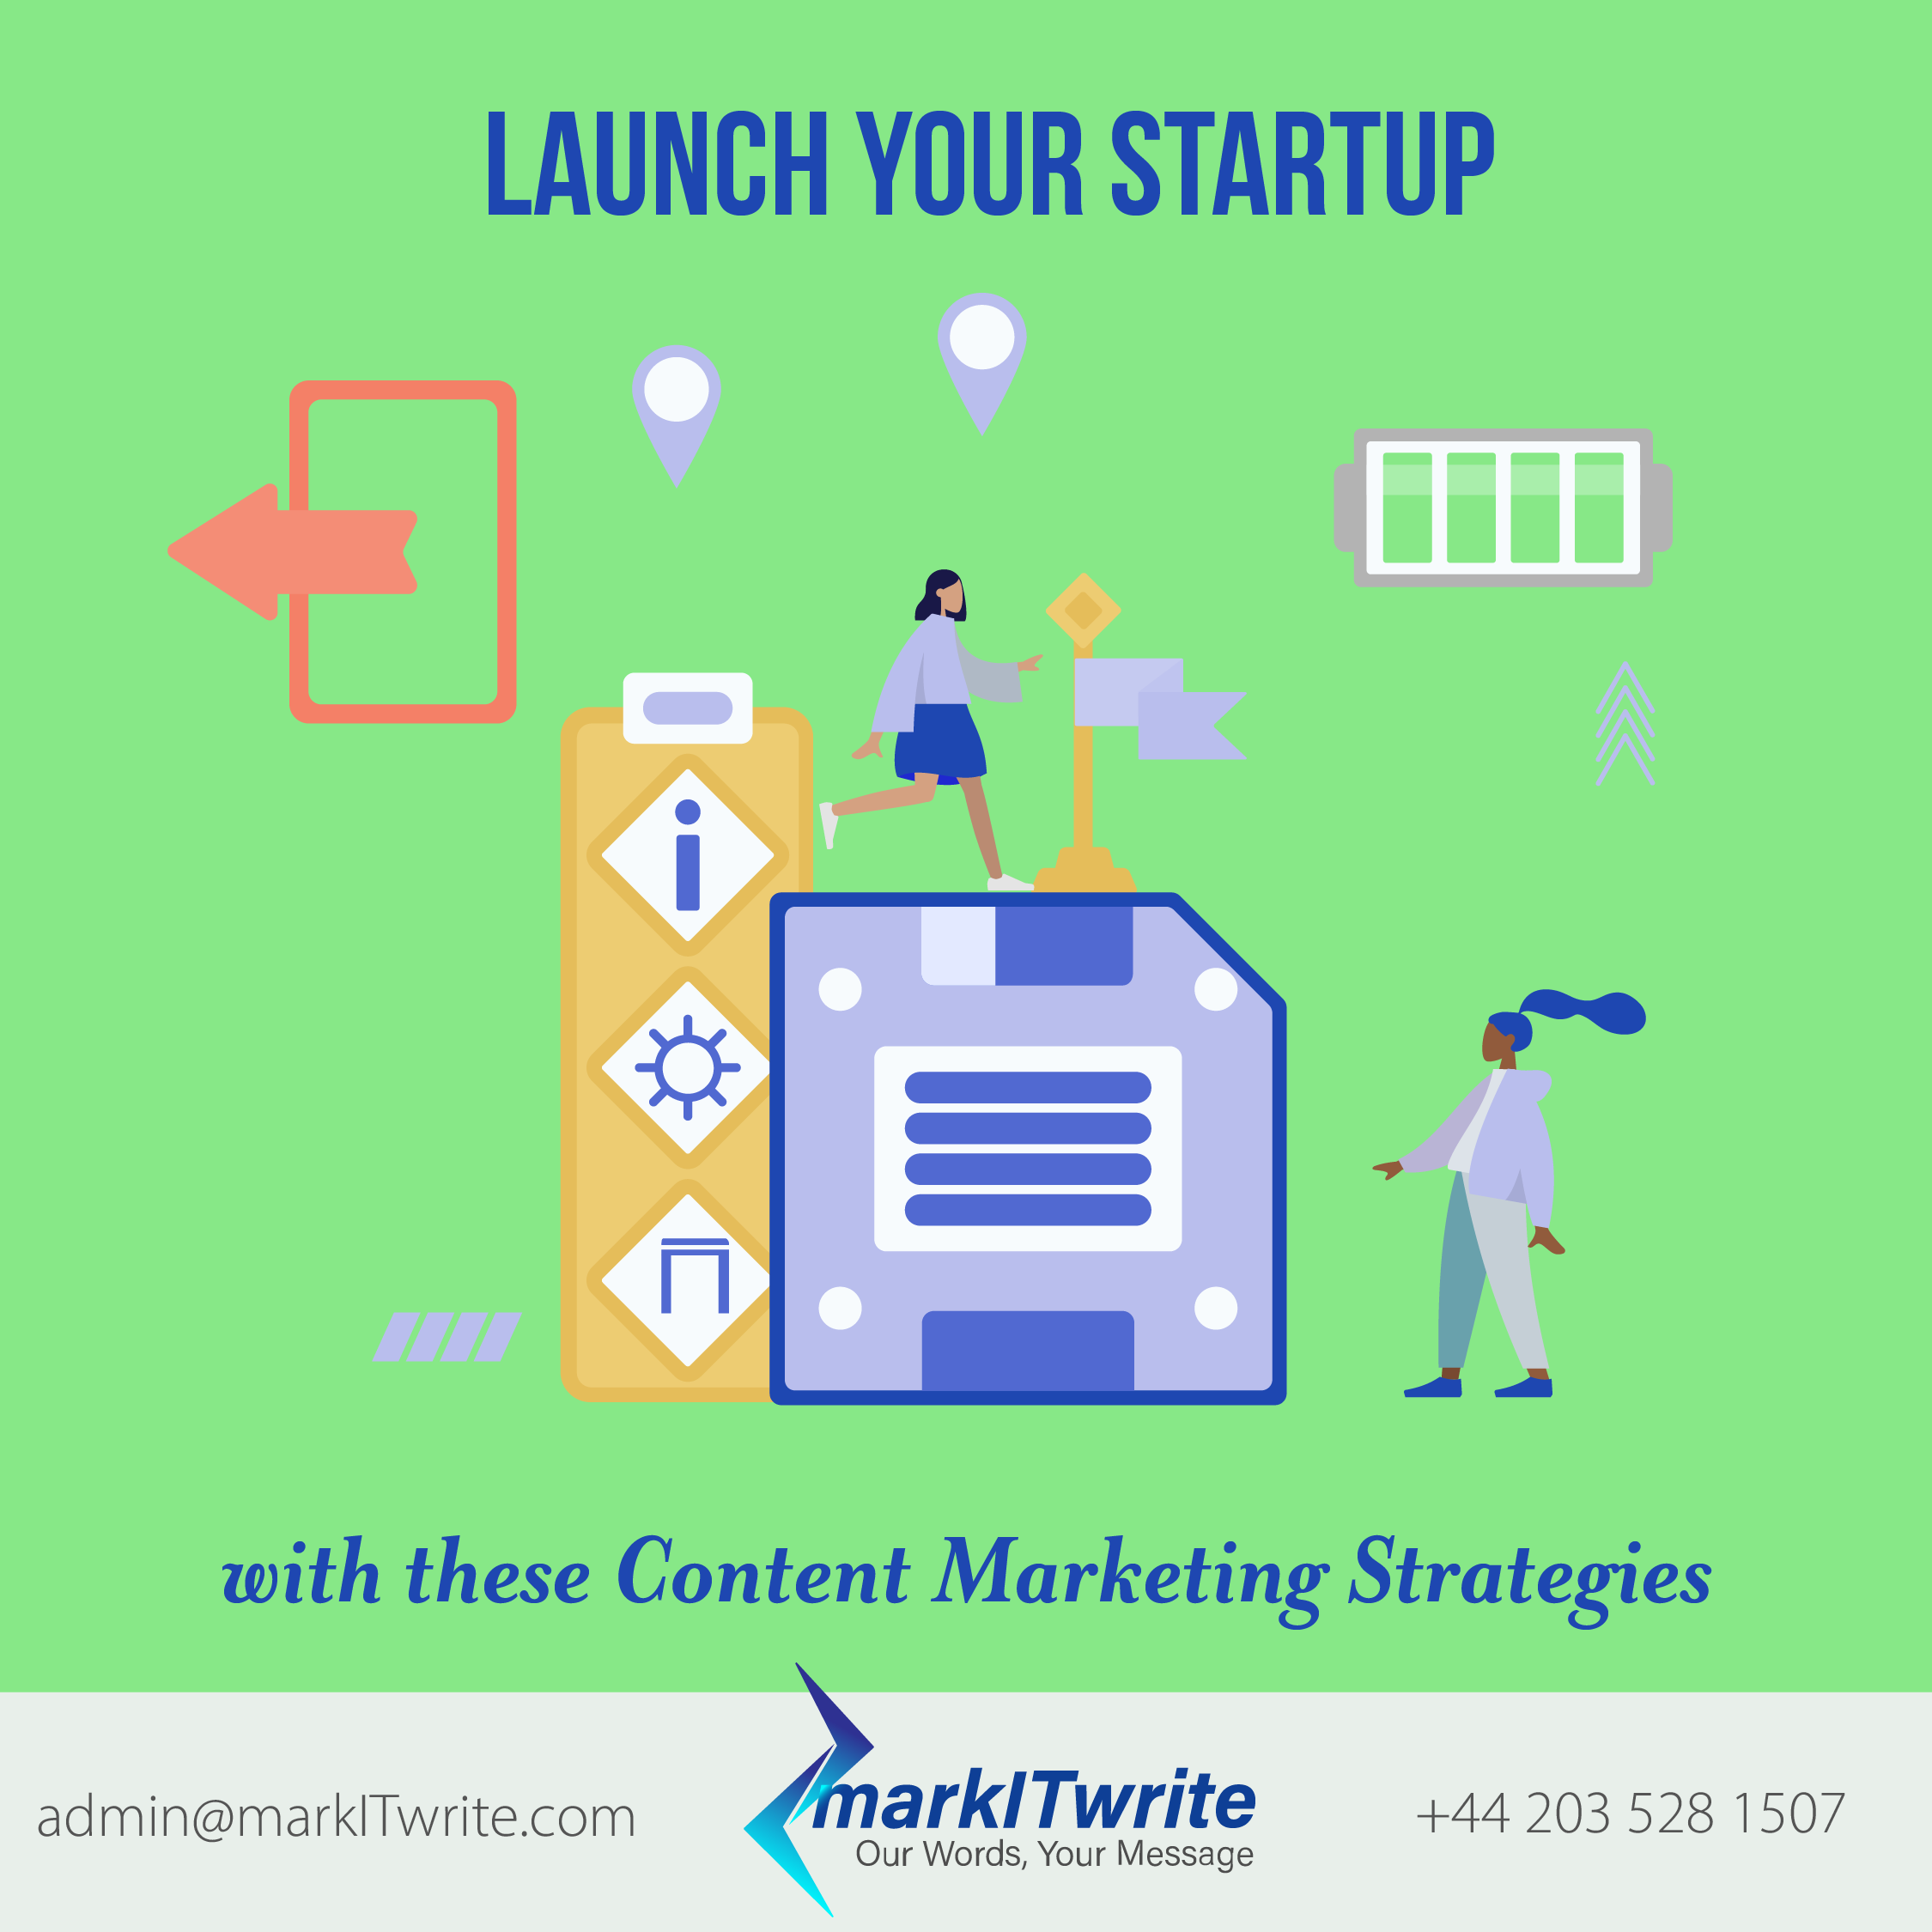 Launch Your Start-Up with these Content Marketing Strategies